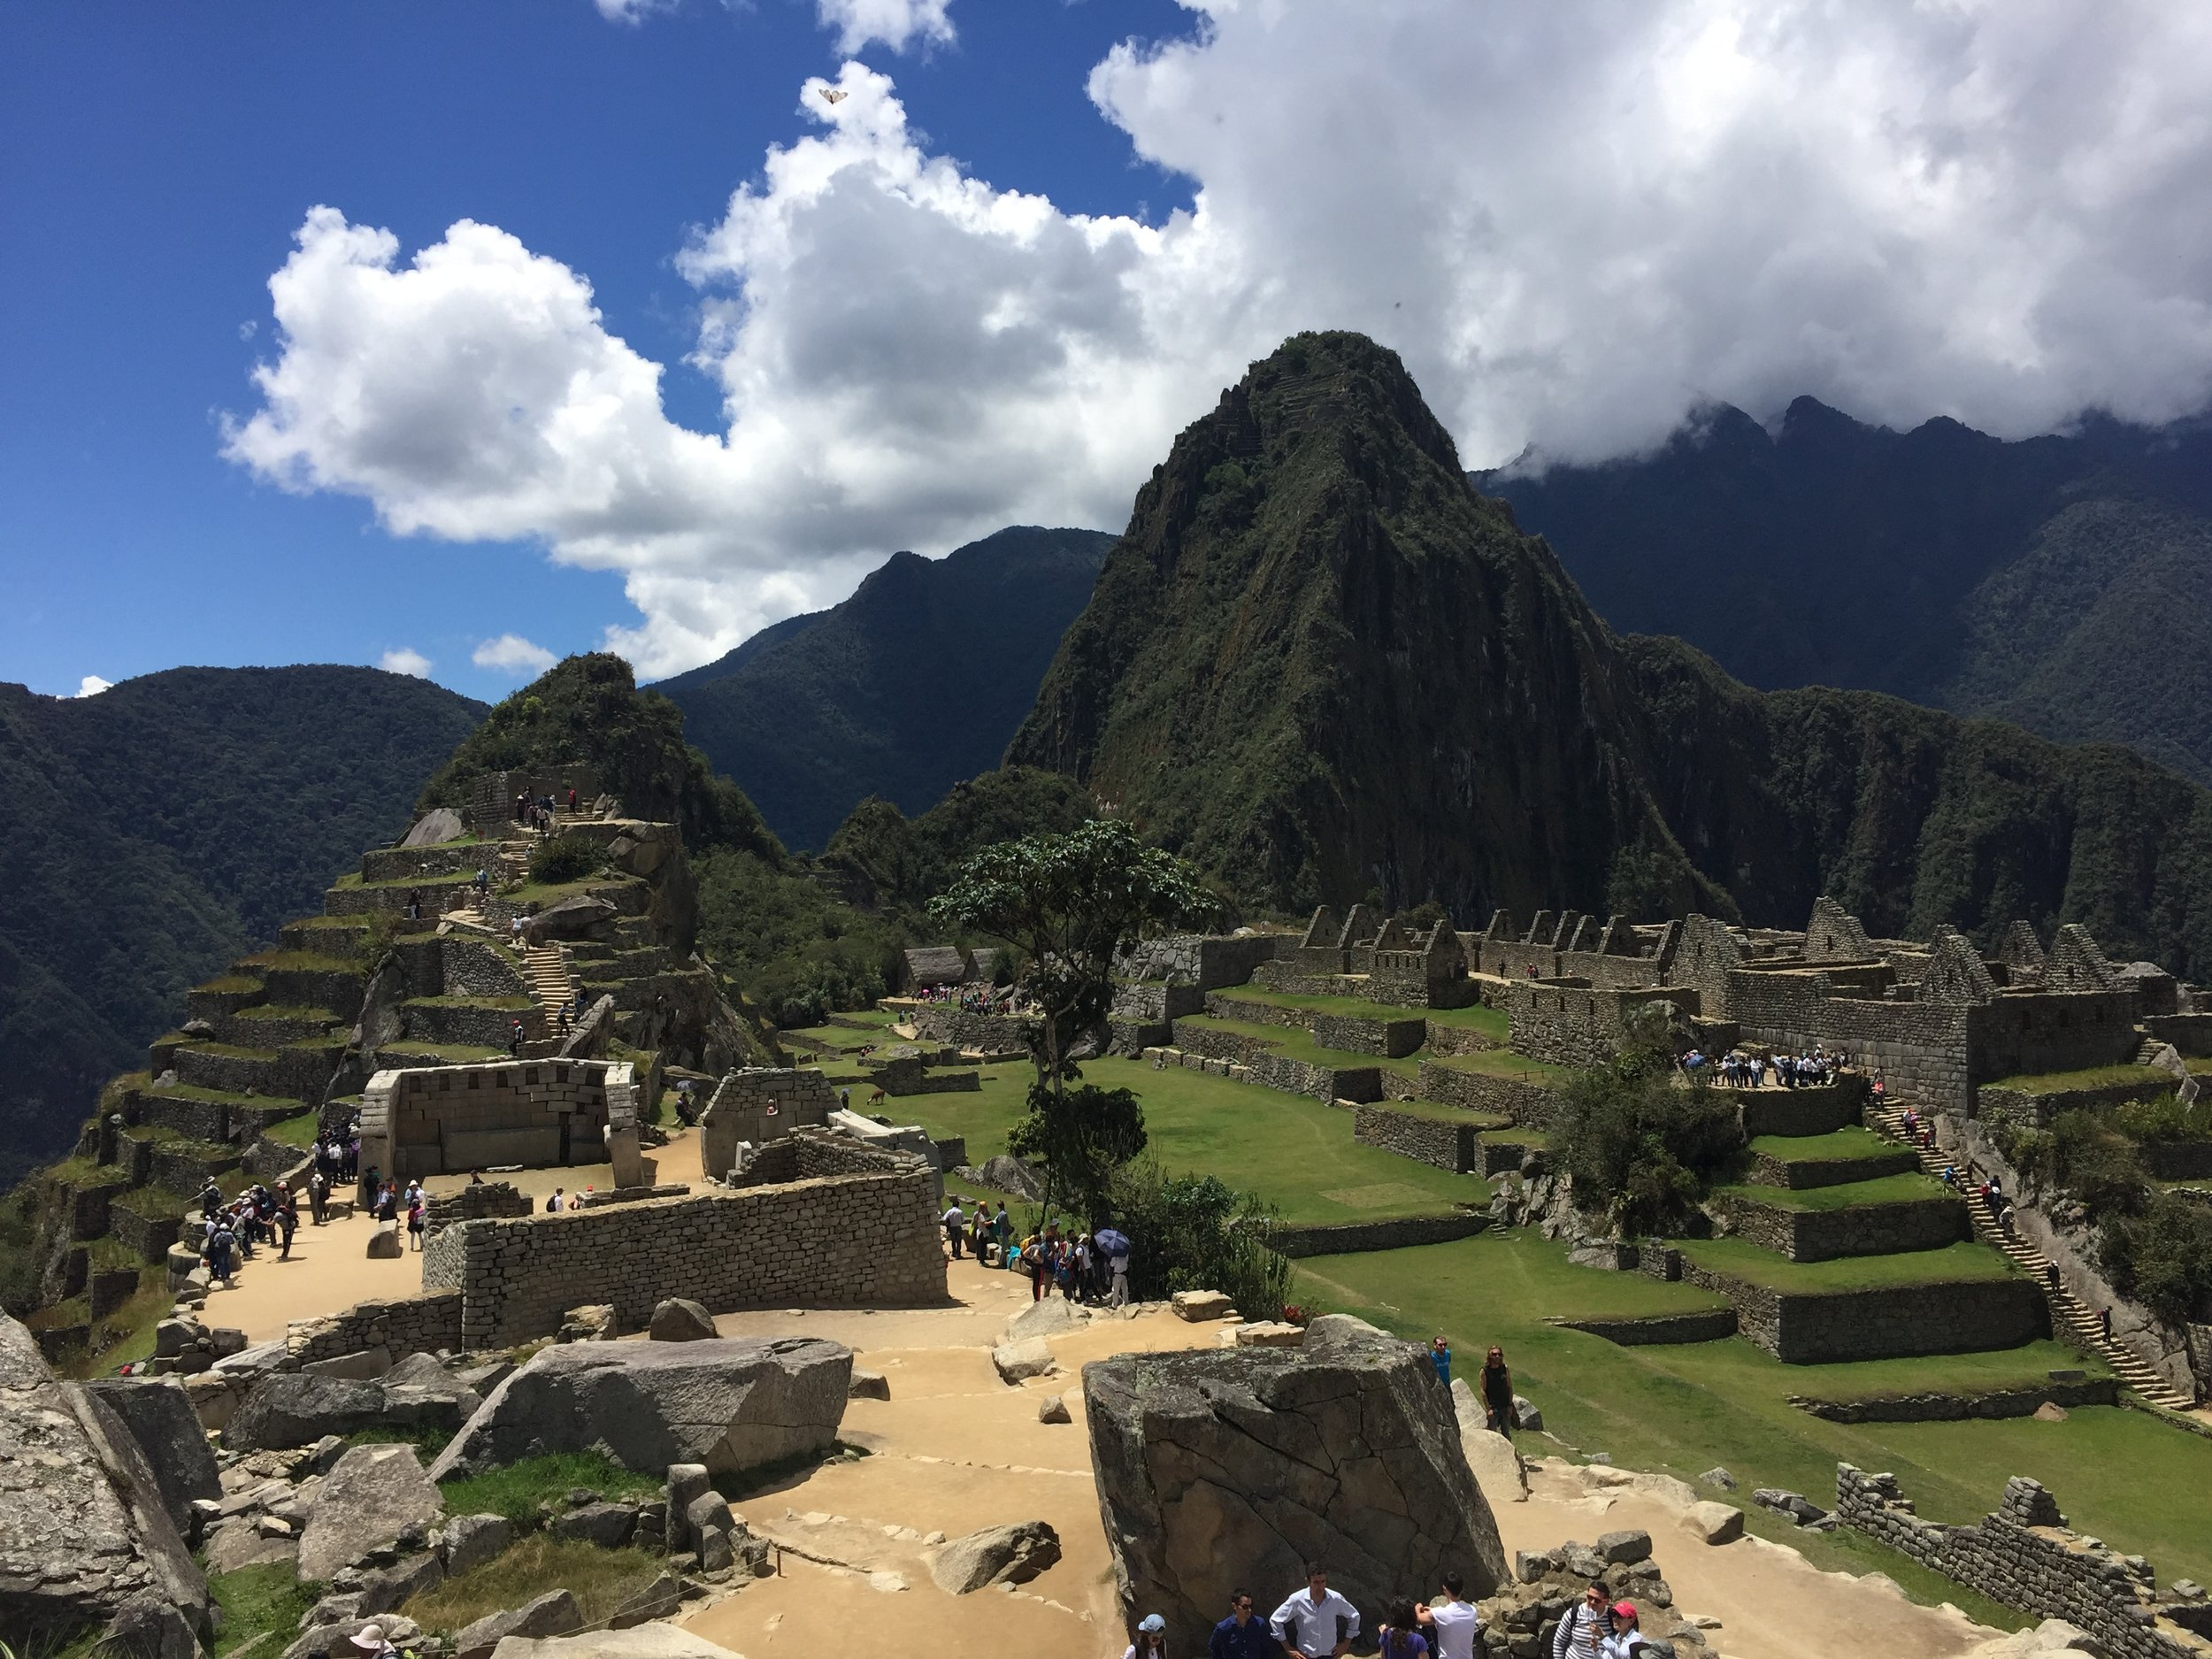 **At some point take a seat. Anywhere. Watch the hundreds of visitors matriculate around the ruins. Transport yourself back to the year 1460. There were only 750-1000 Inca's while 5,000 visitors each day.